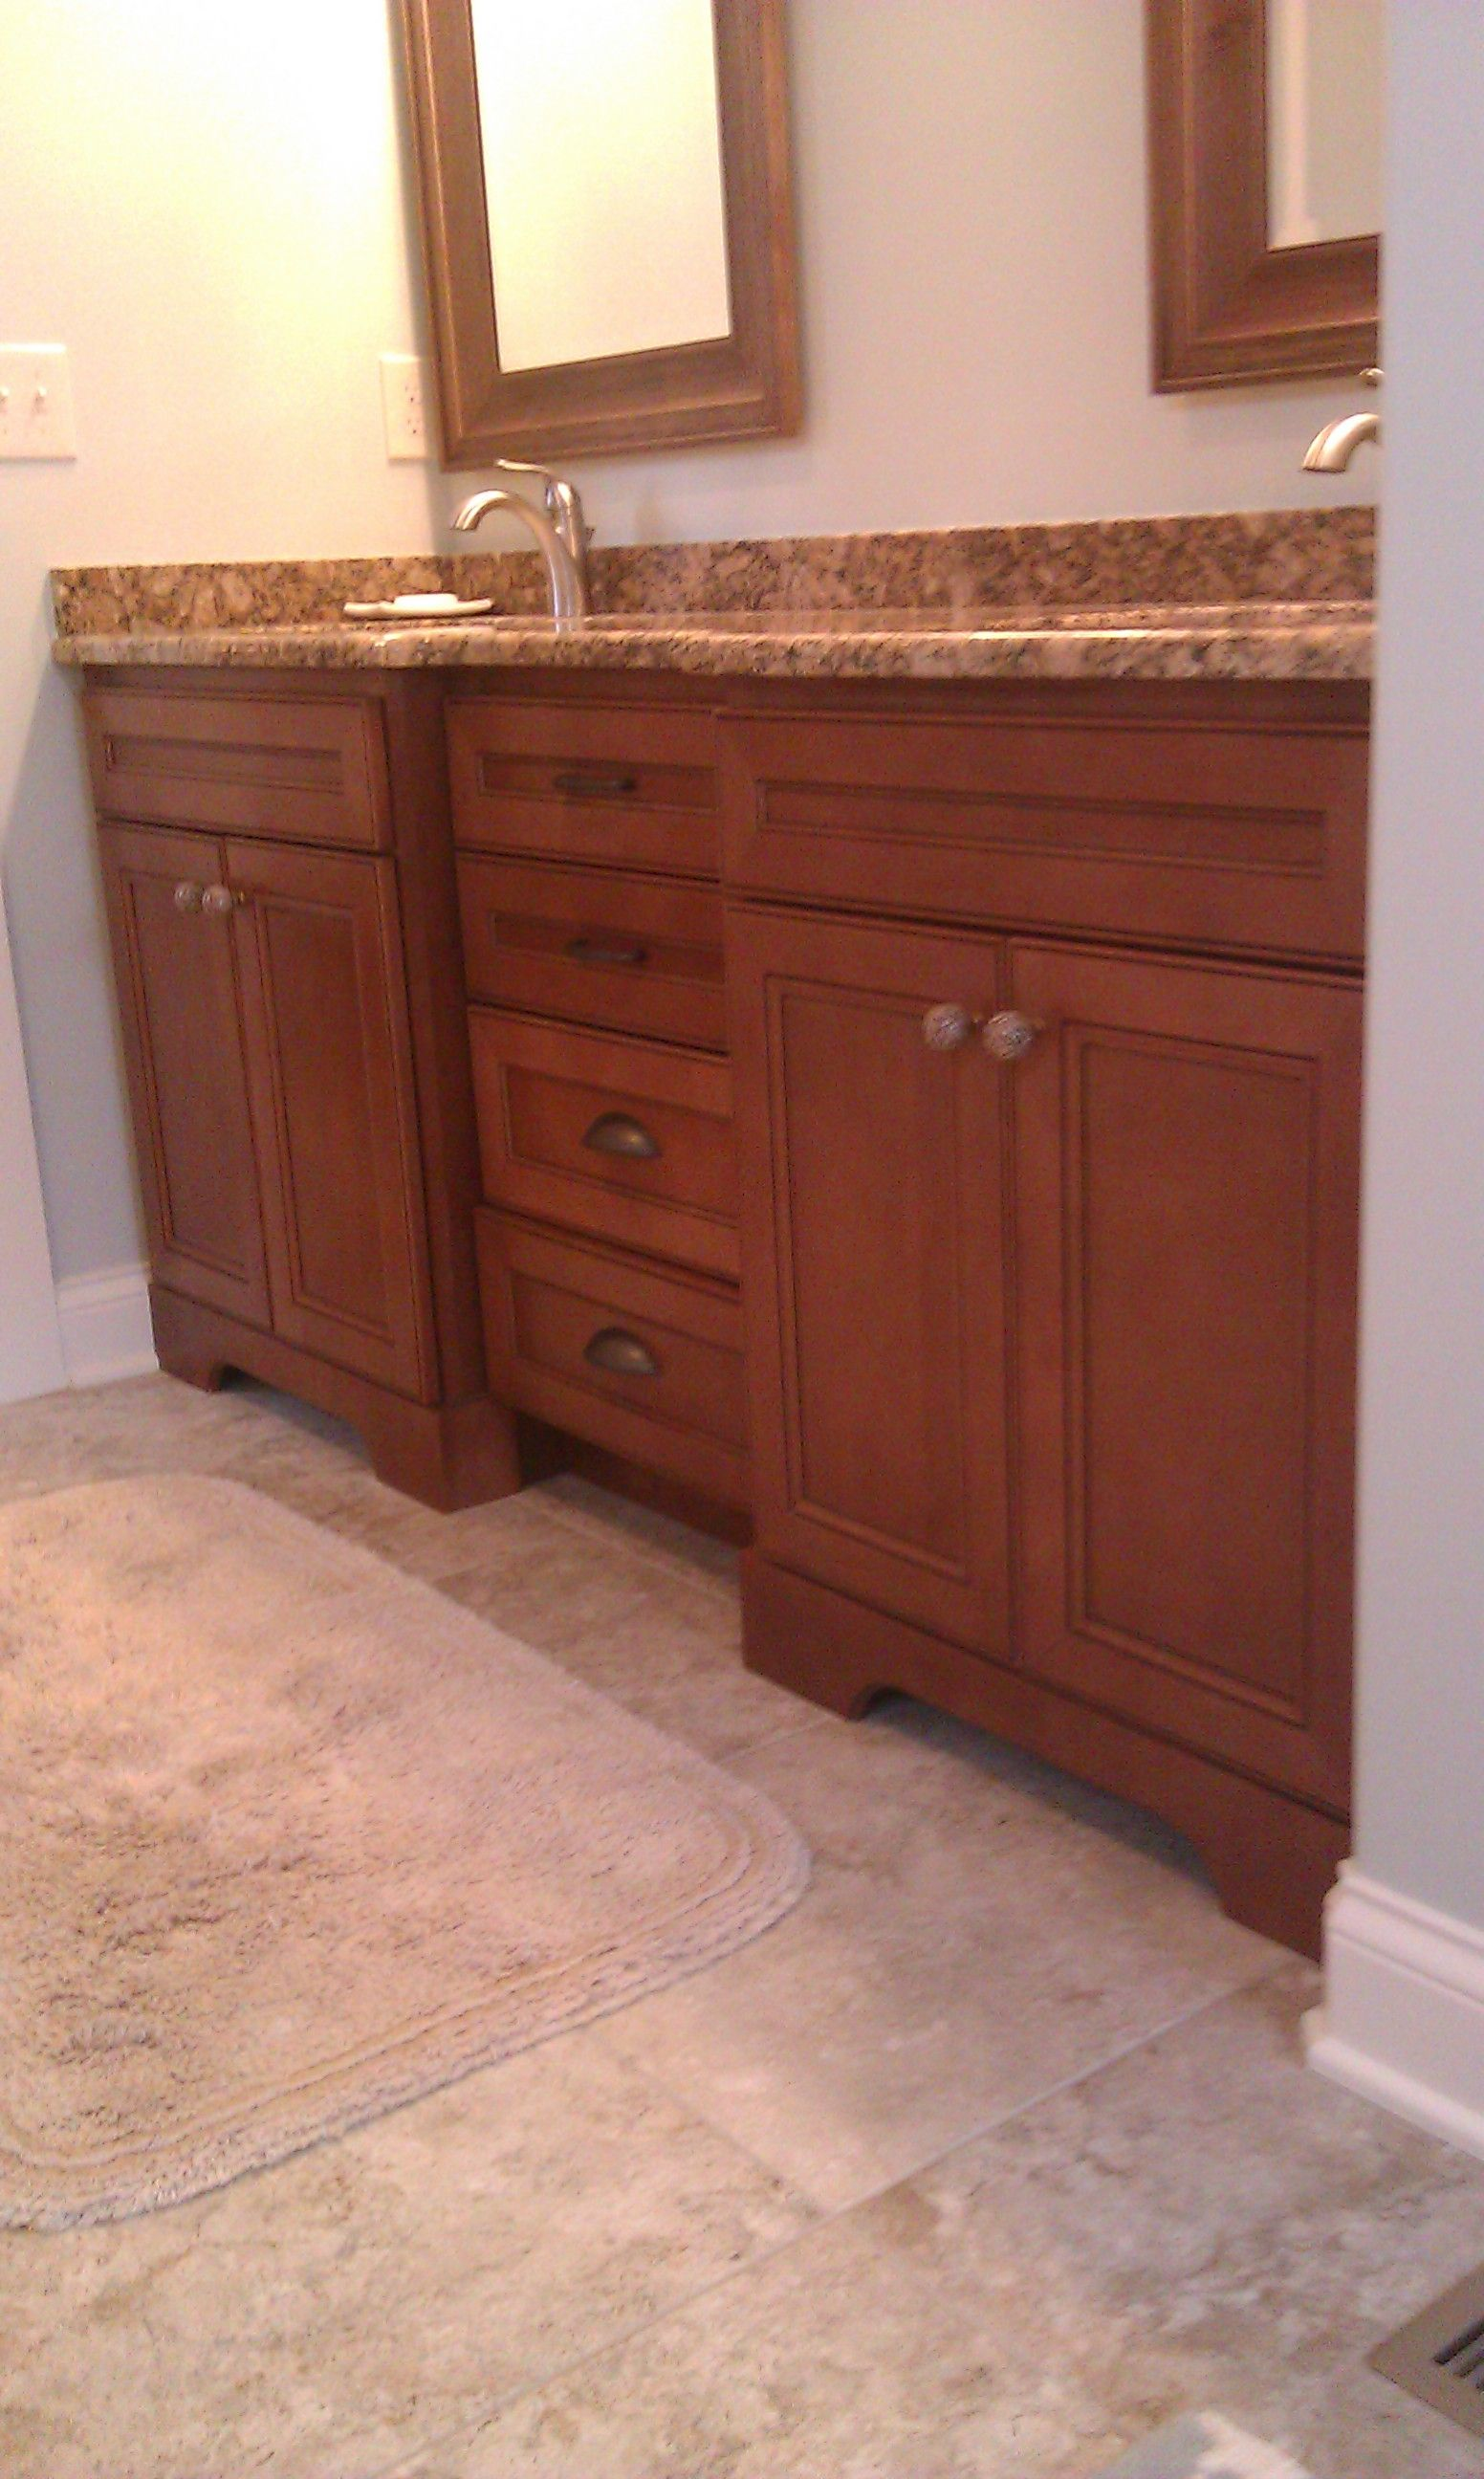 Master Bath Vanity Cabinet U2013 Homecrest Cabinetry, Eastport Maple, Terrain  With Cocoa Glaze,